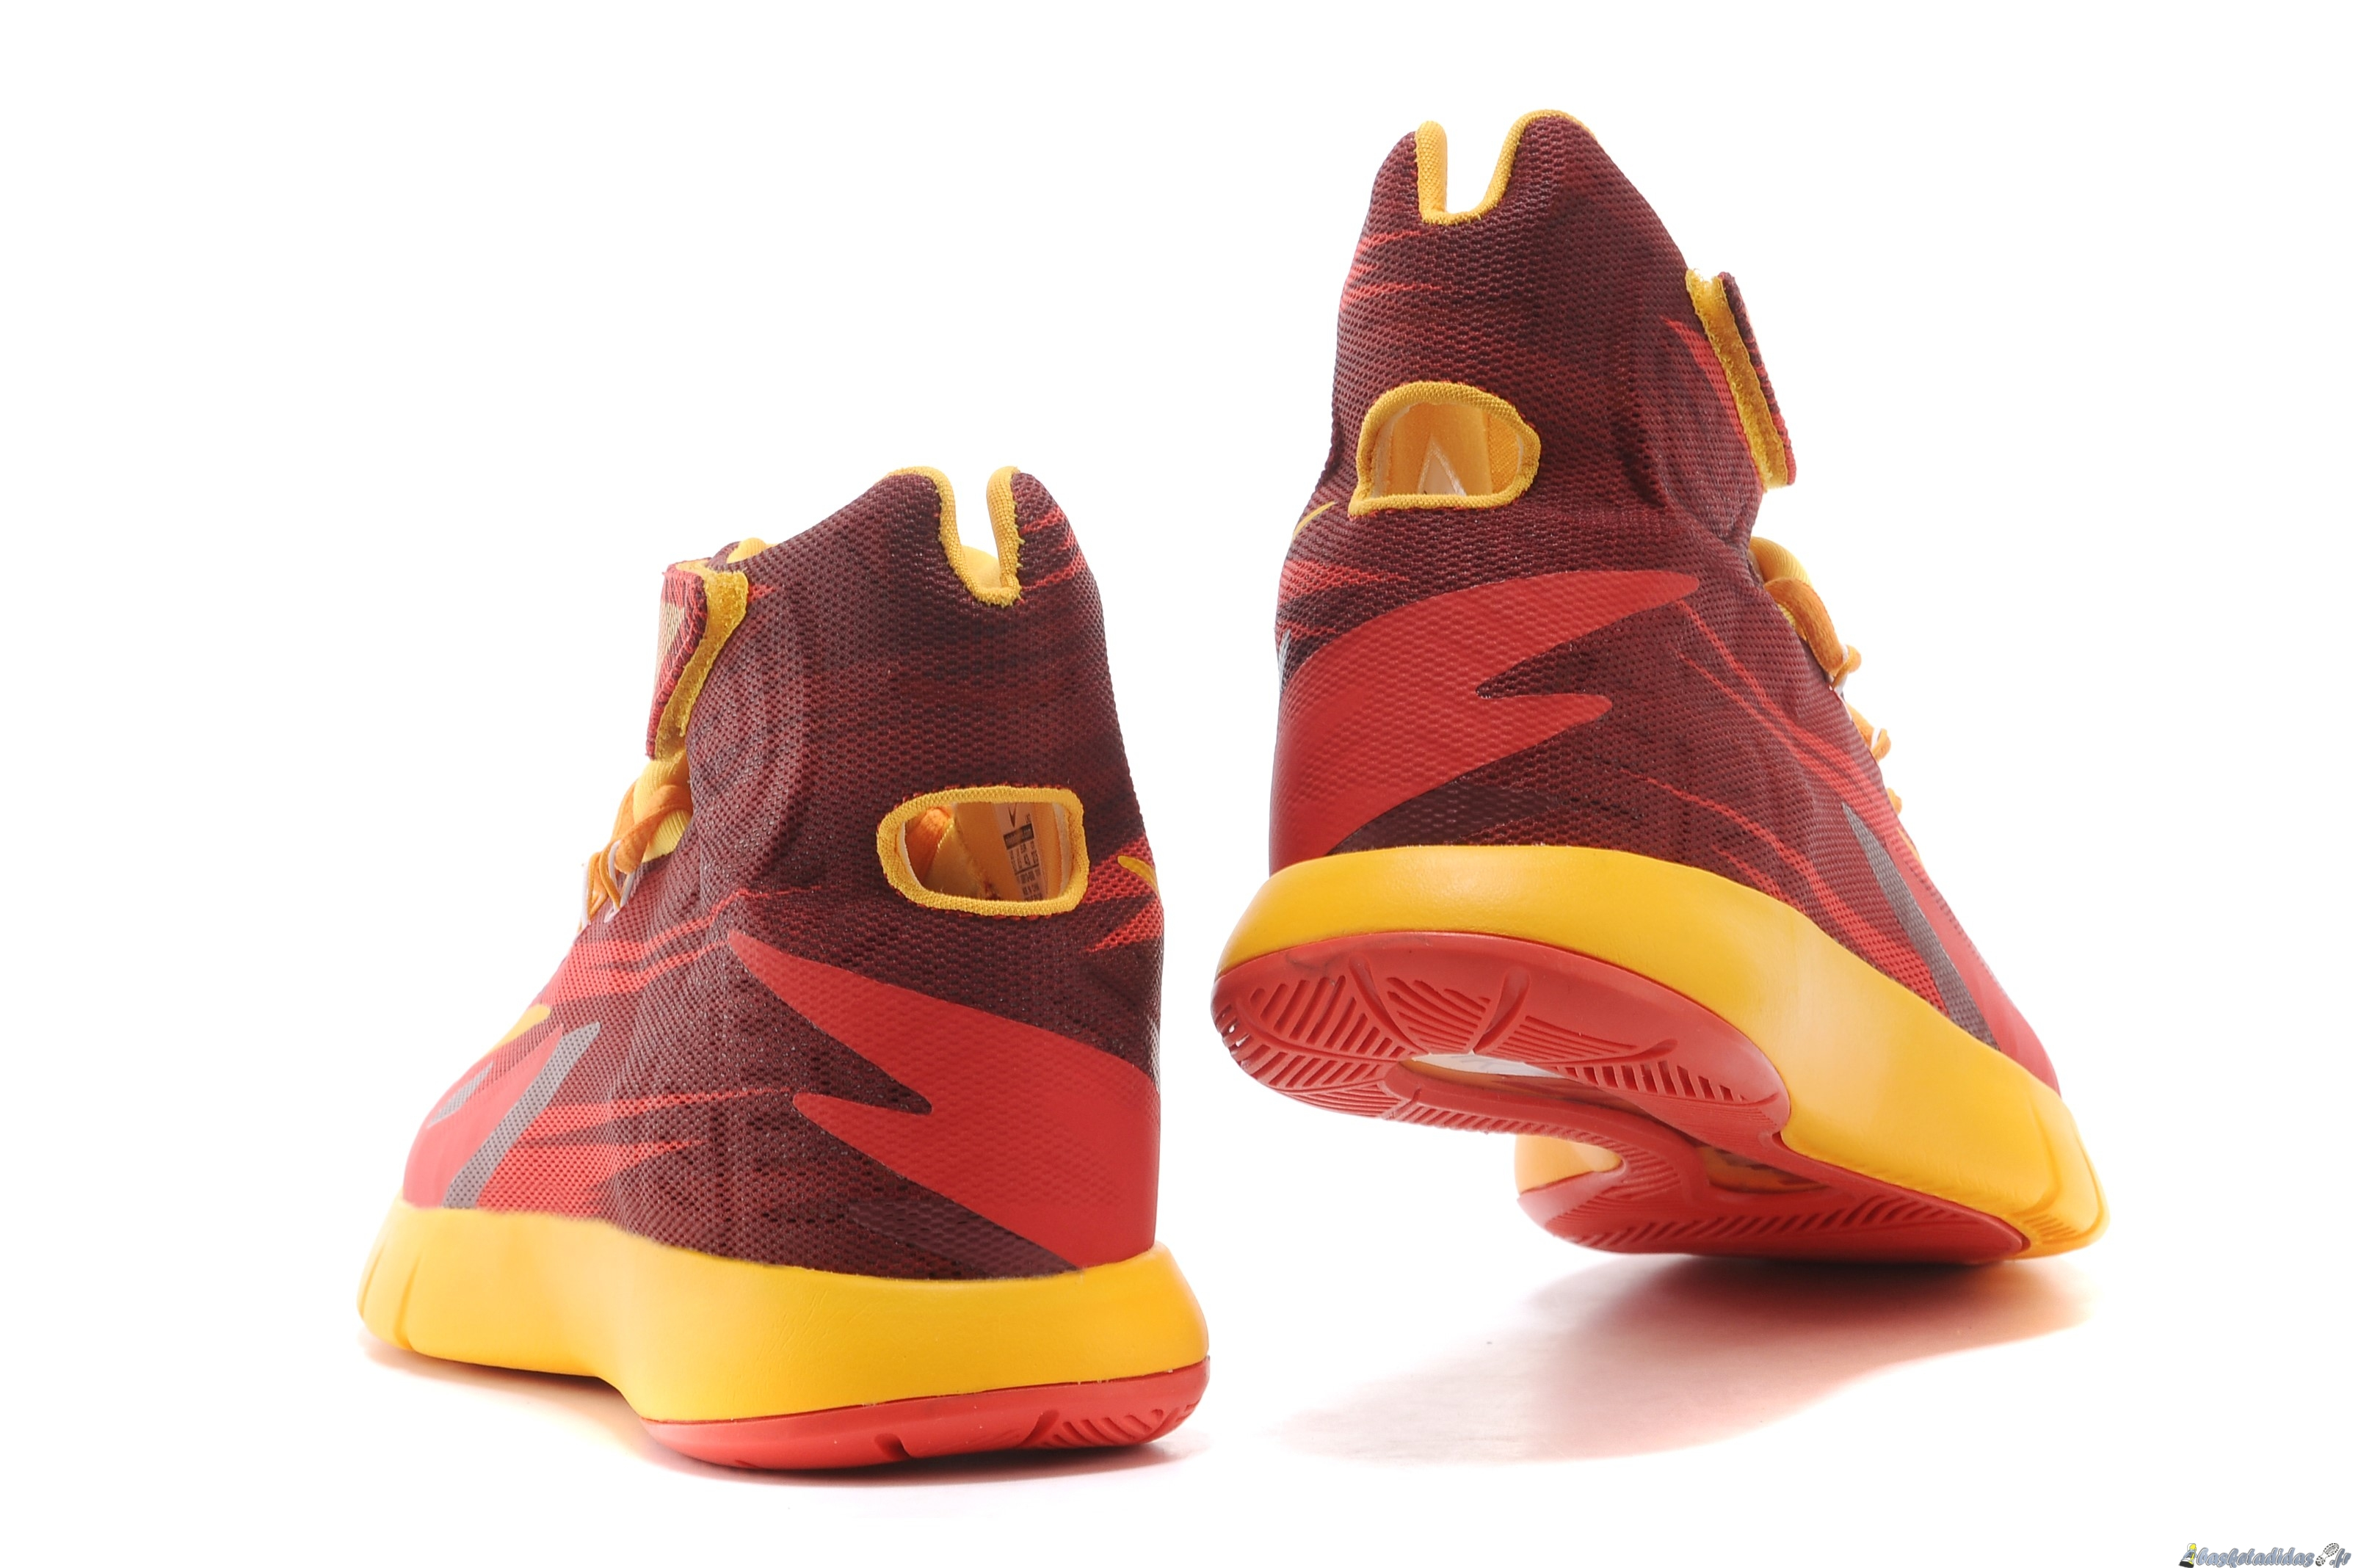 reputable site 2238c e9ebe ... Chaussure de Basket Nike Zoom Hyperrev Kyrie Irving Homme Rouge Jaune  ...